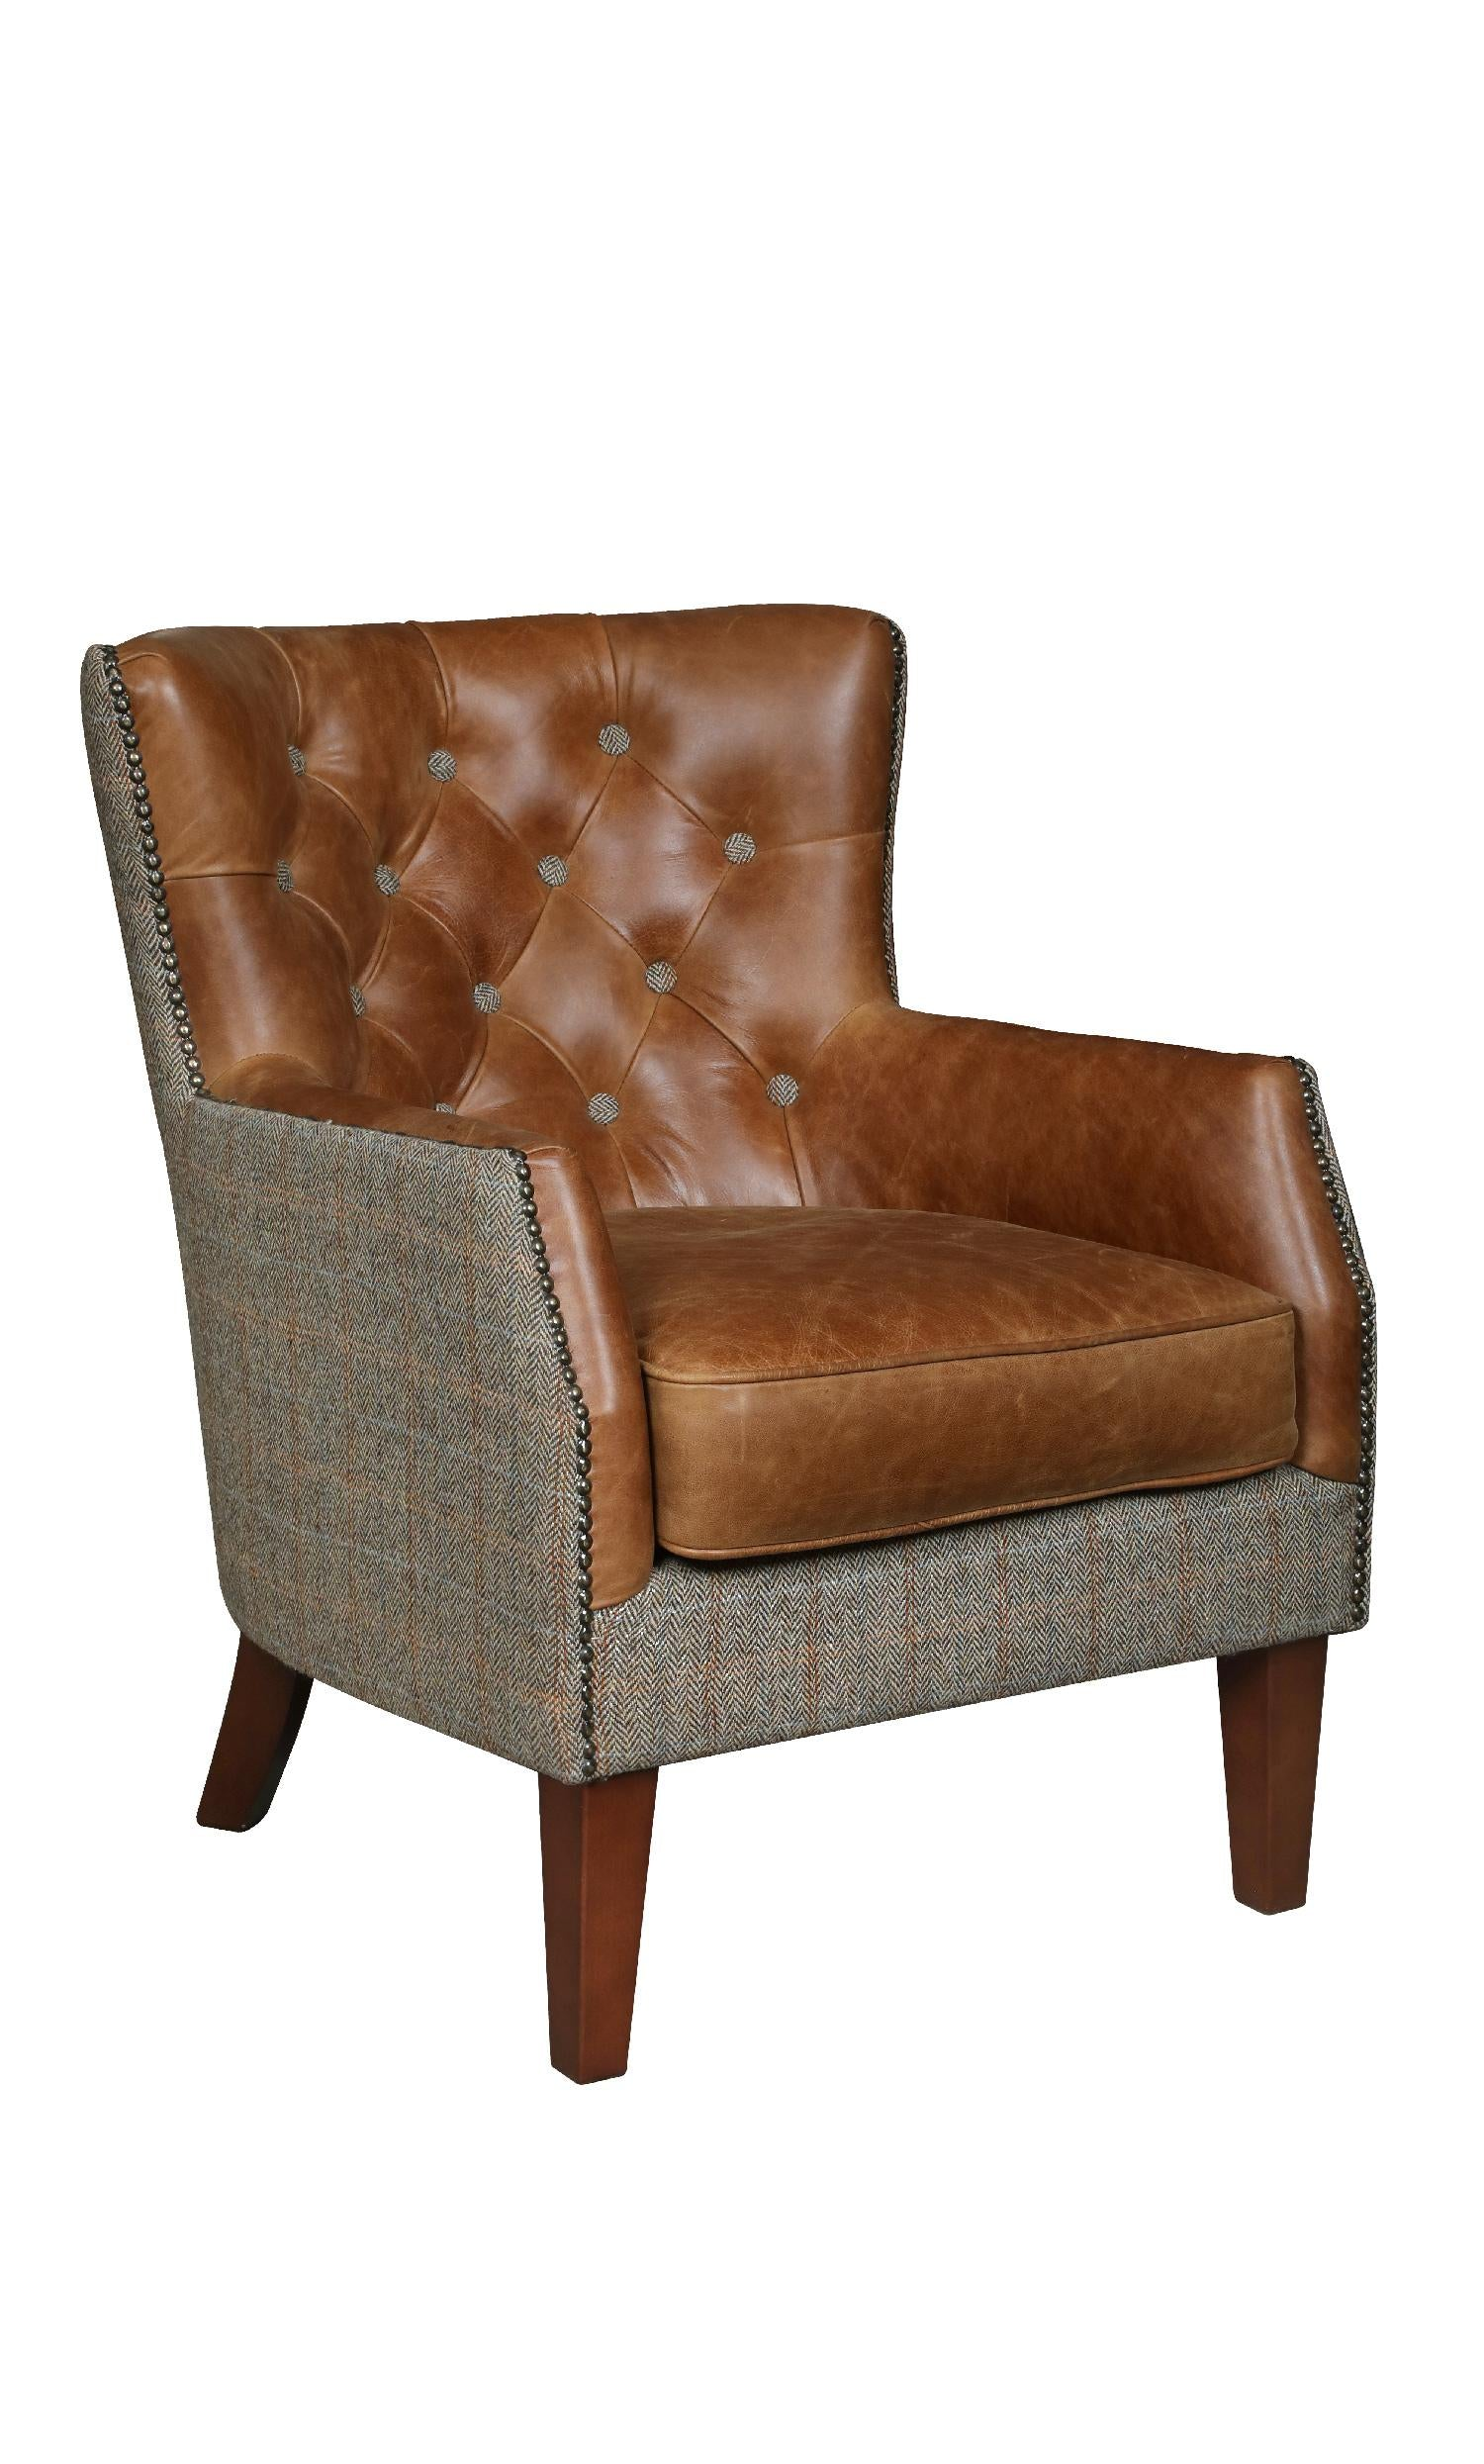 Stanford Harris Tweed and Leather Accent Chair.-harris tweed accent chairs-Against The Grain Furniture-Hunters Lodge-Against The Grain Furniture